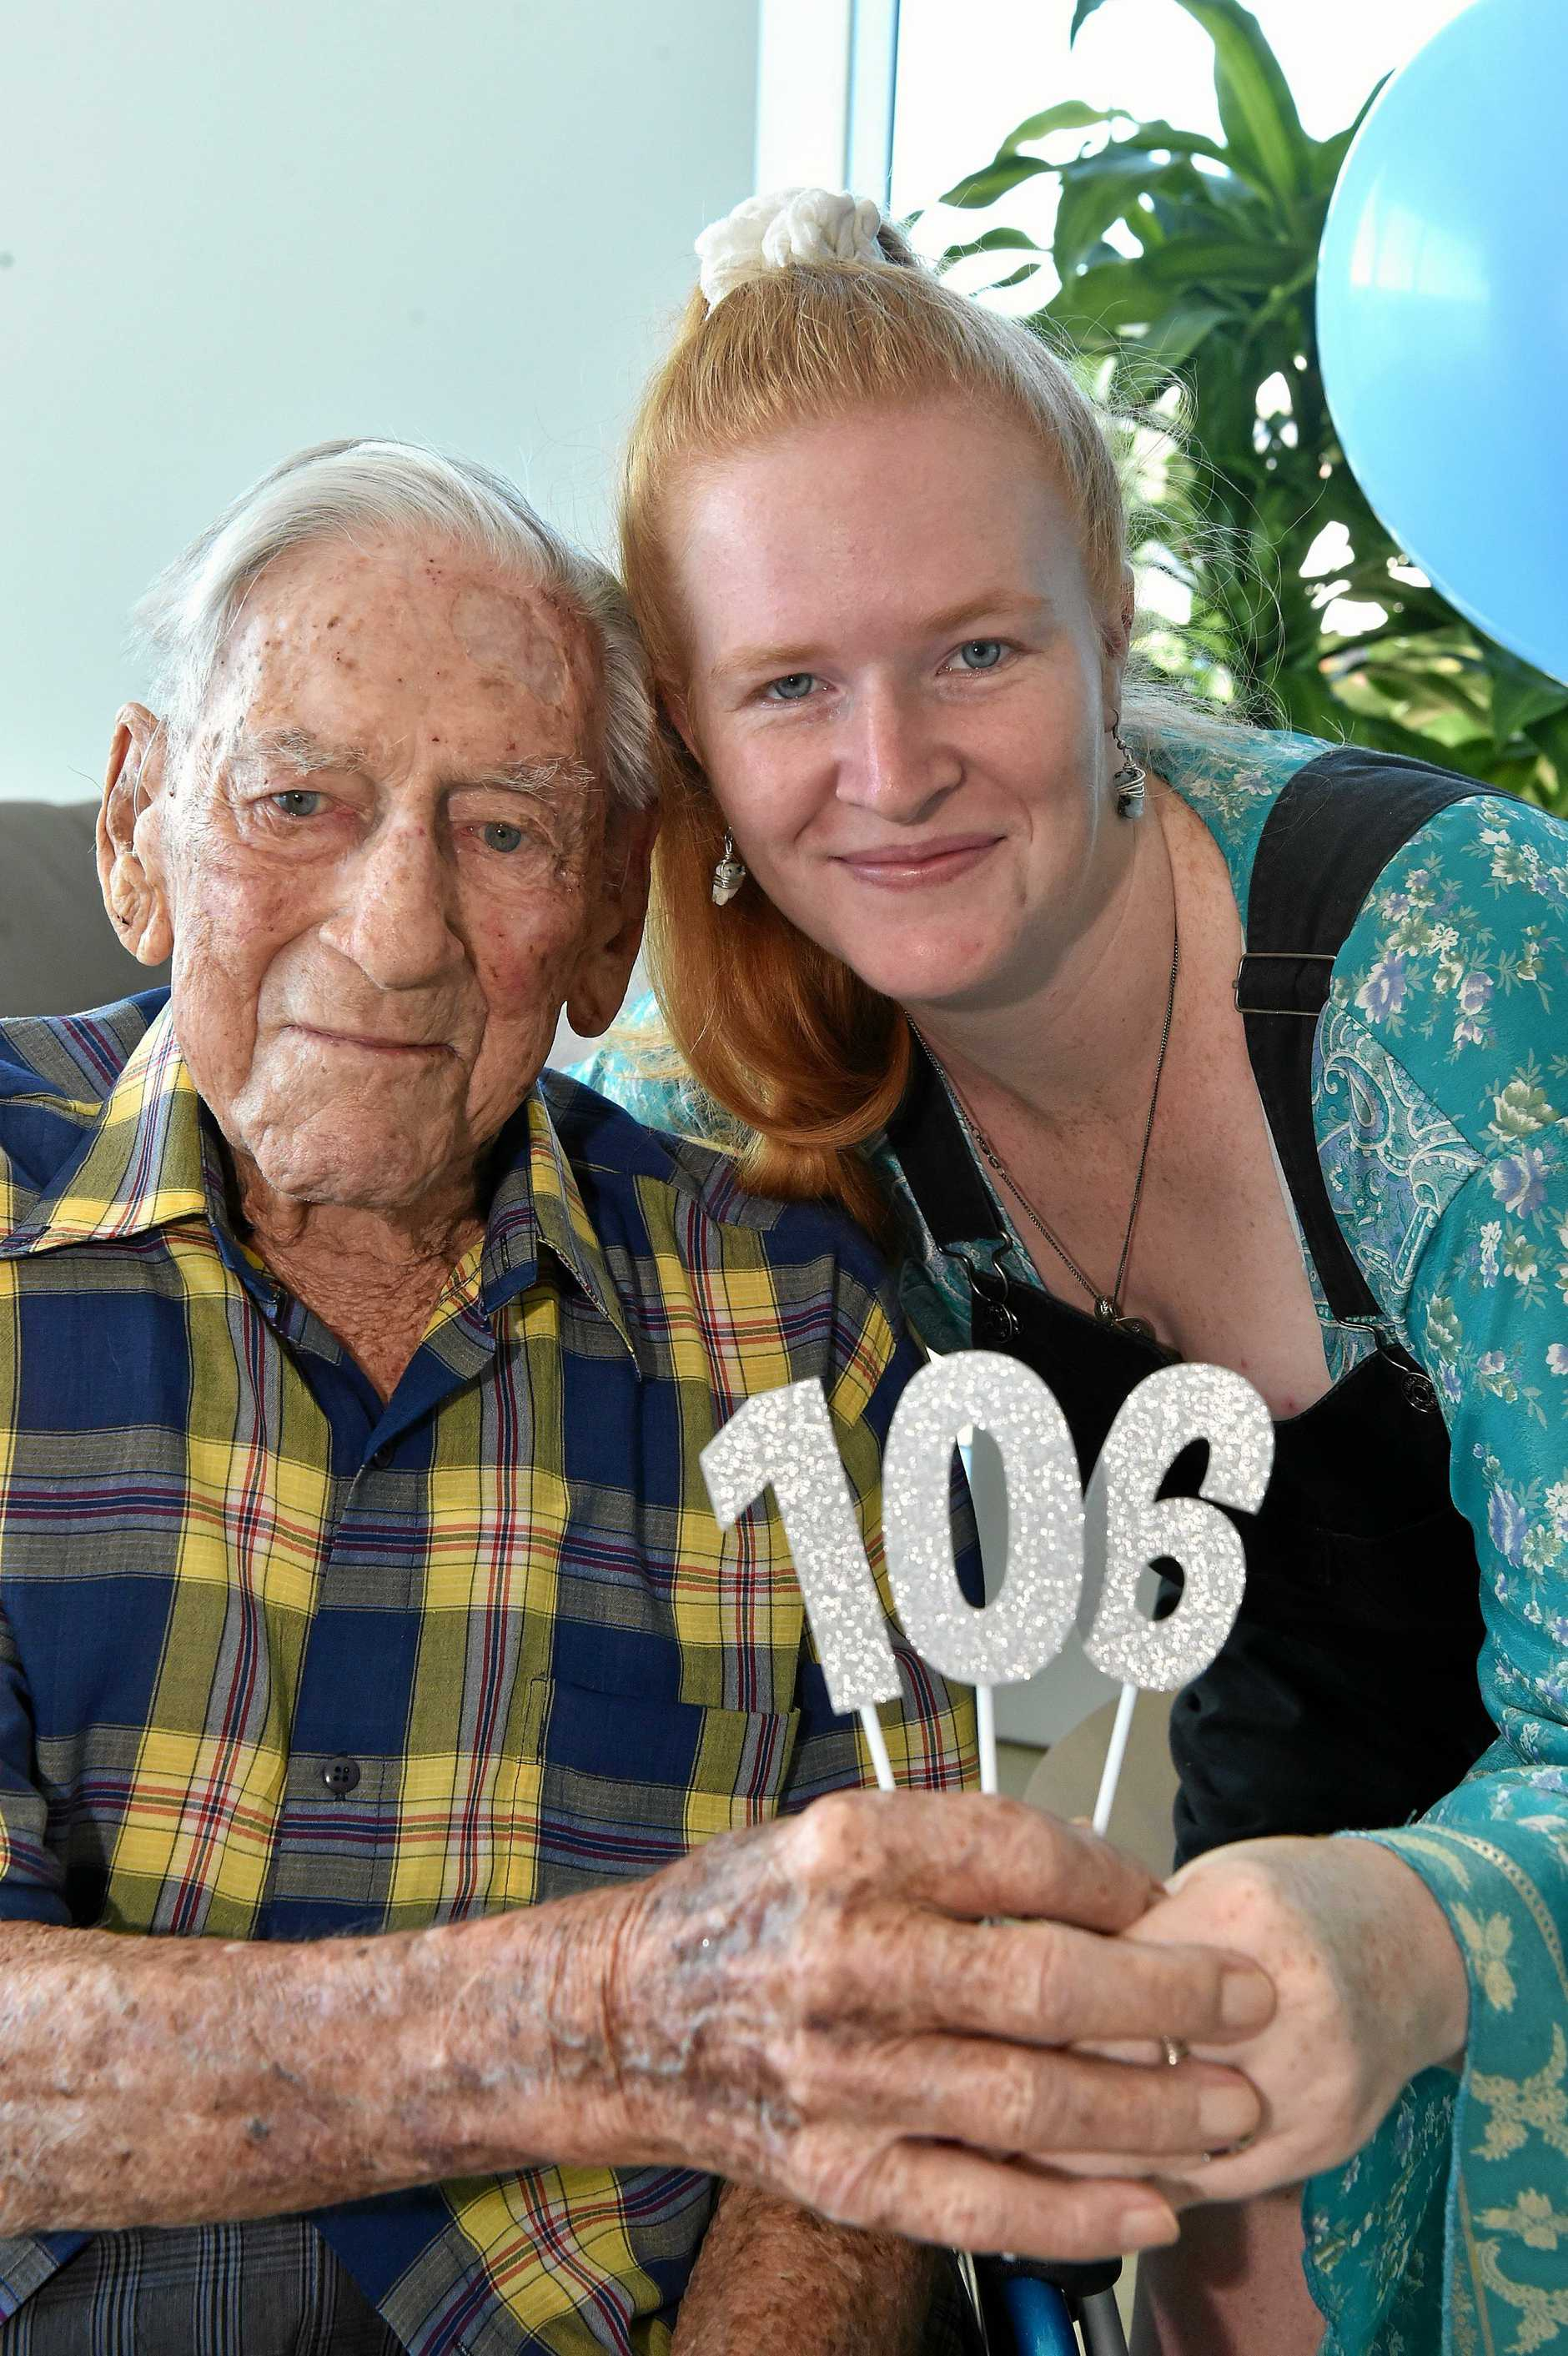 CELEBRATION: Doyne Coutts celebrates his 106th birthday with family and friends at TriCare Kawana Waters Aged Care Residence. Doyne is pictured with his grand daughter Brooke Vanachteren.